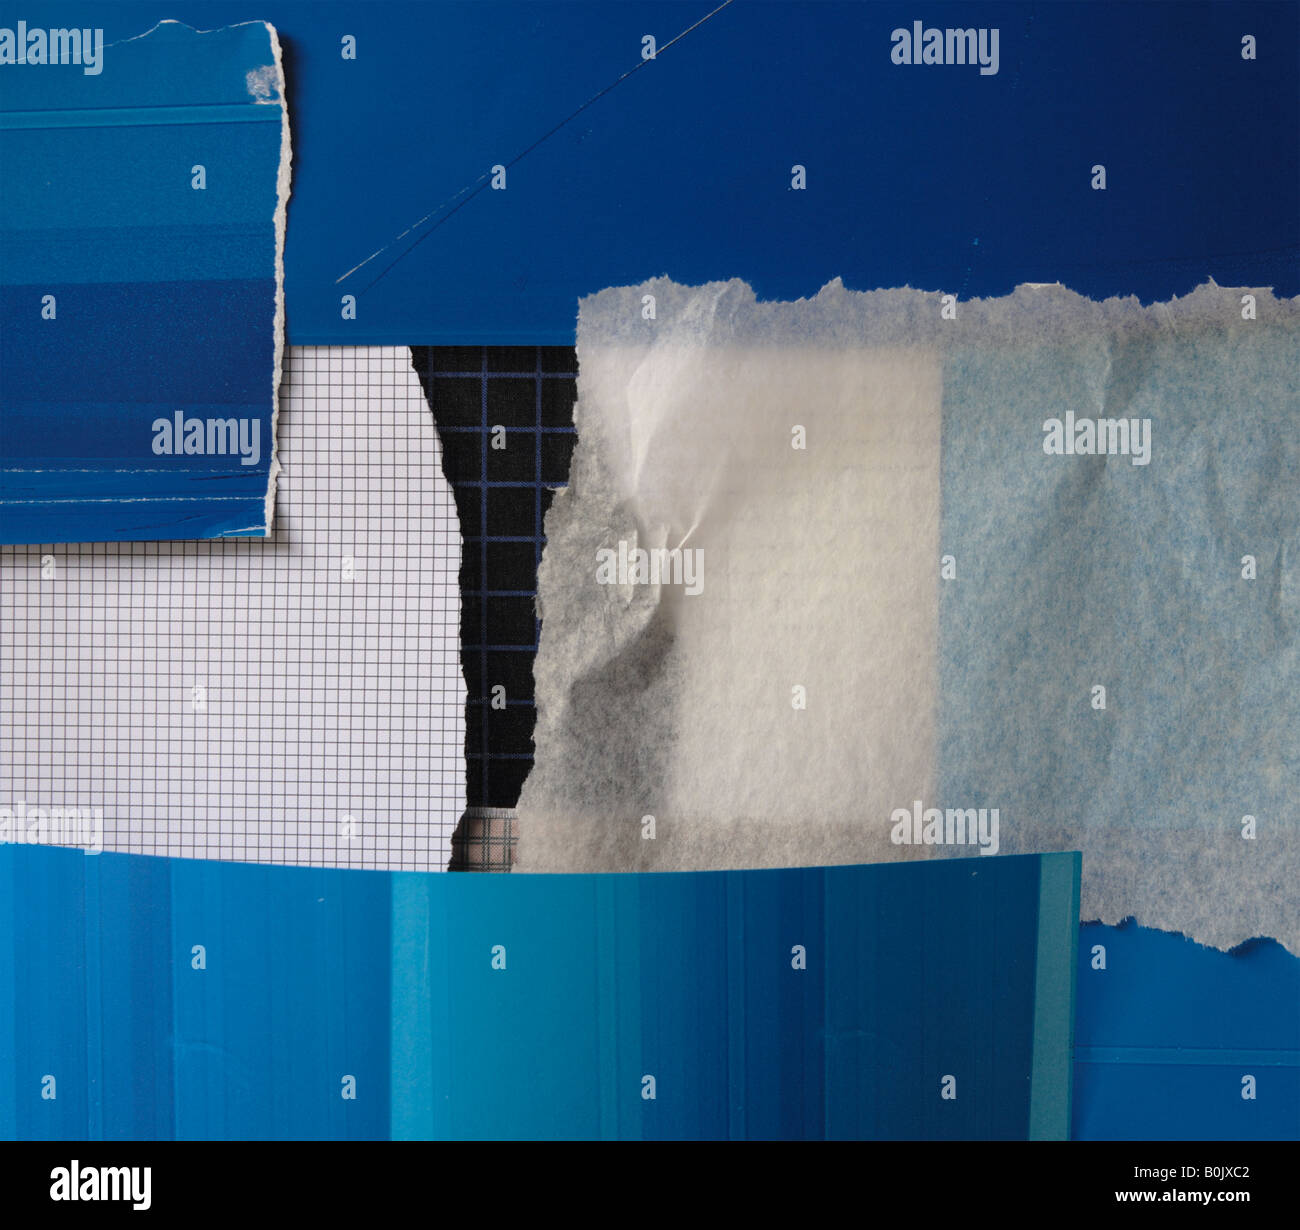 collage background of paper and fabric in blue, black and neutral colors - Stock Image